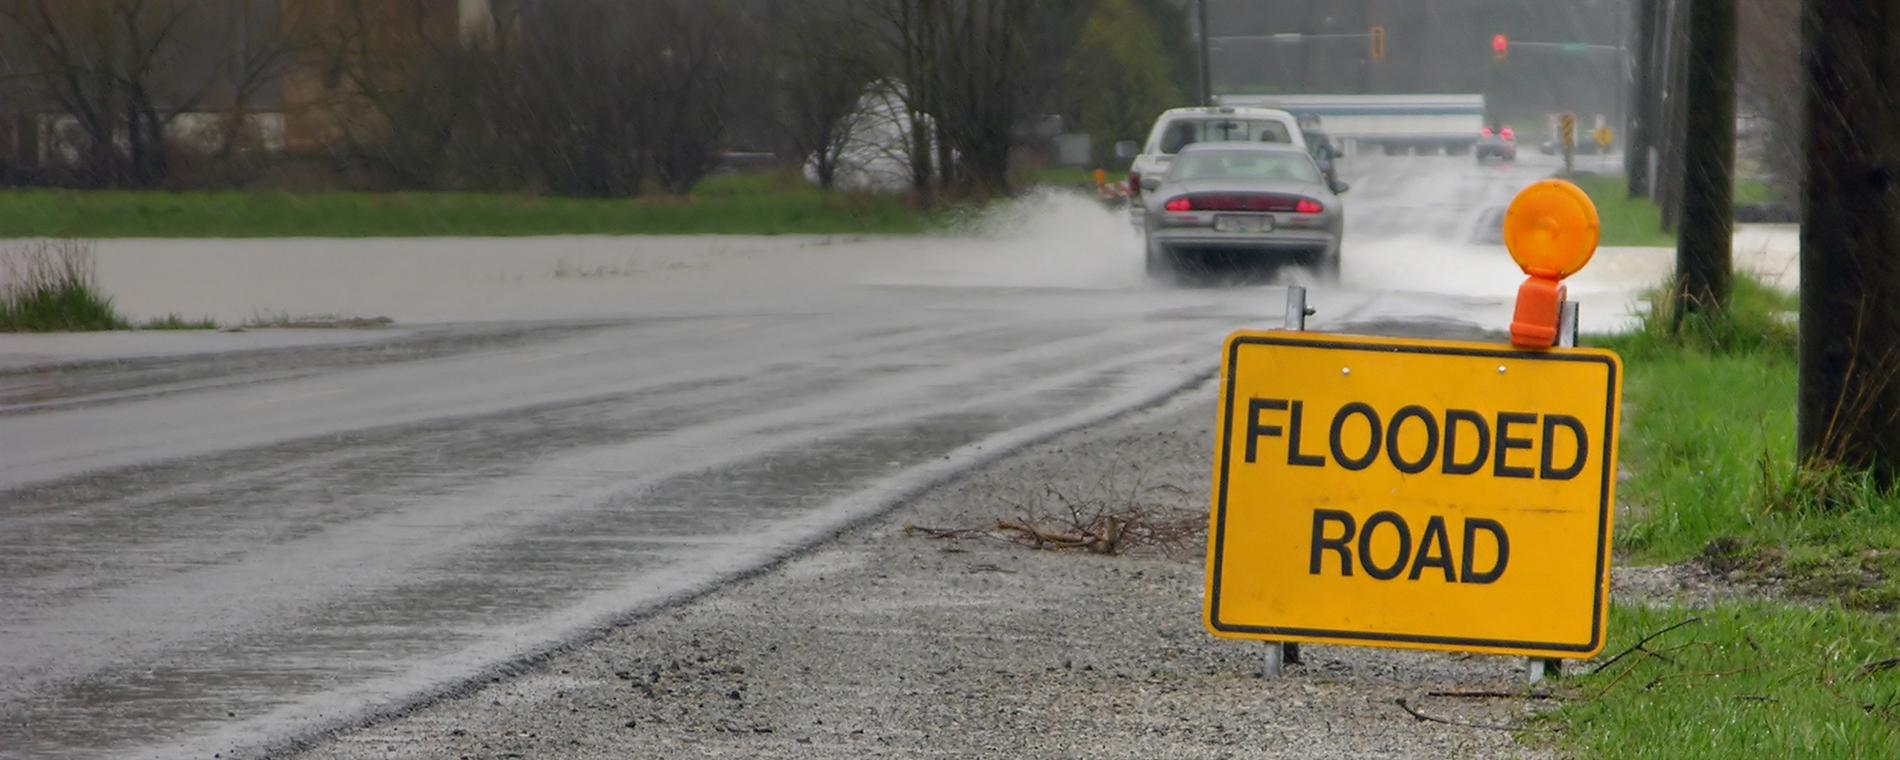 Stay off of flooded roads whenever possible